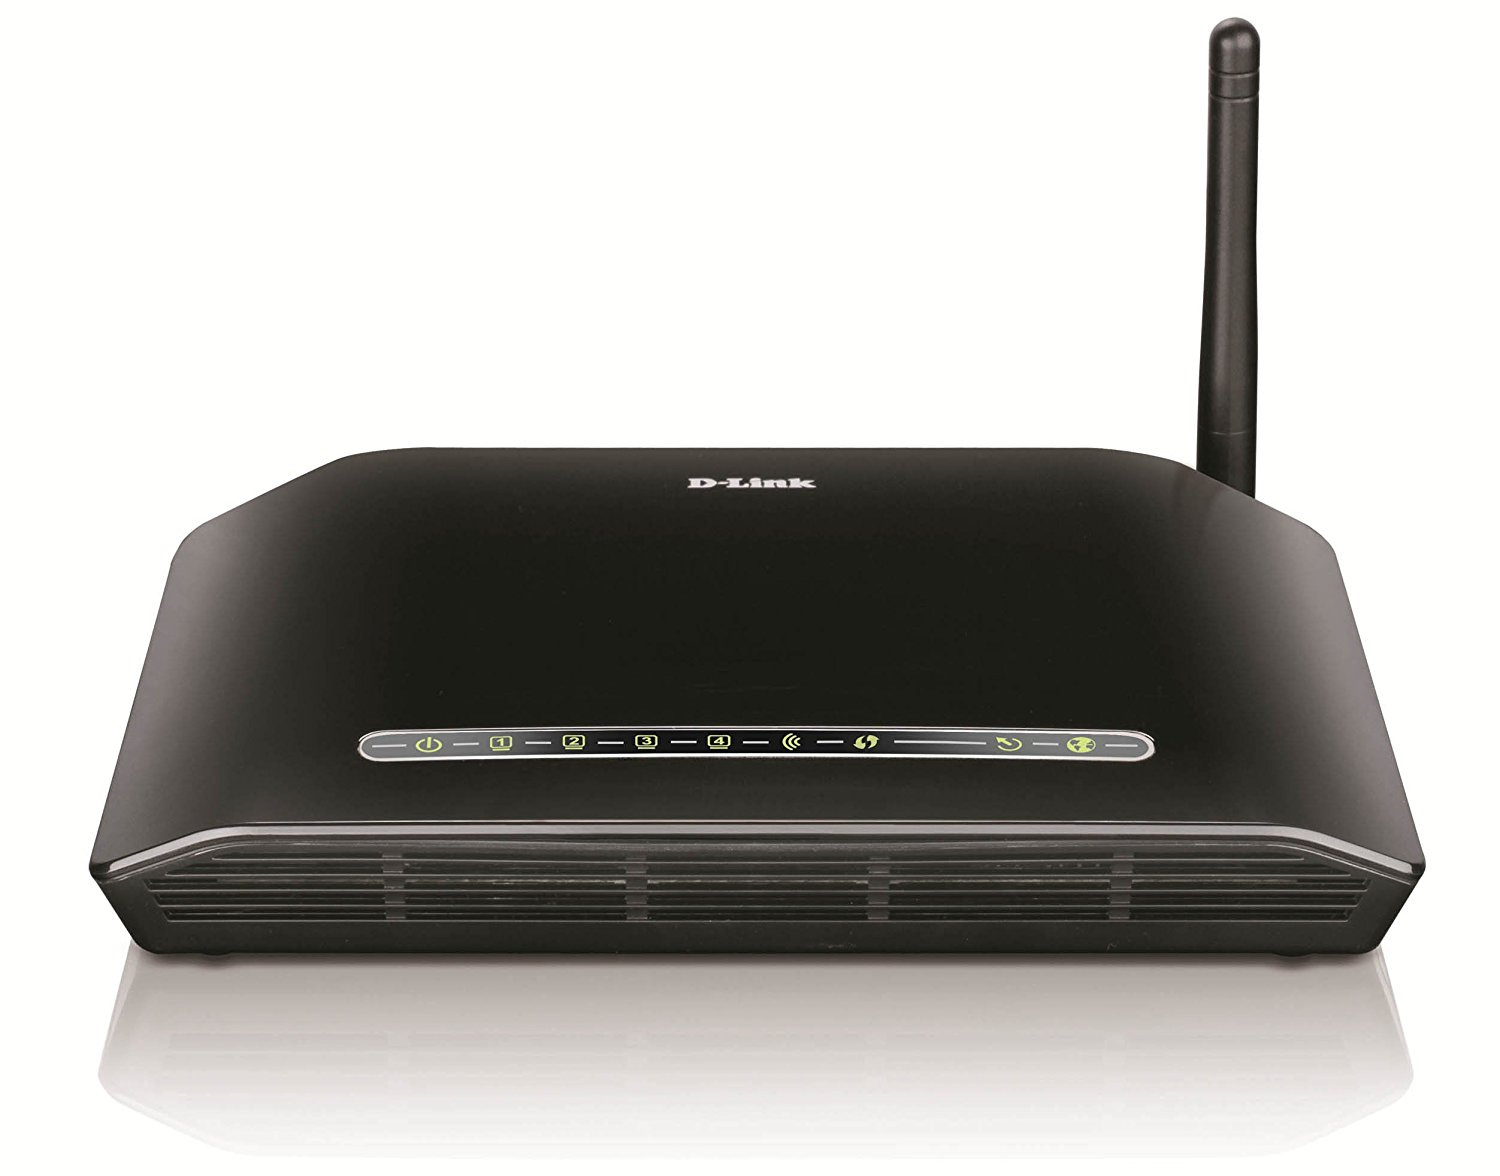 D-Link DSL-2730U Wireless-N 150 ADSL2+ 4-Port Router (Black)